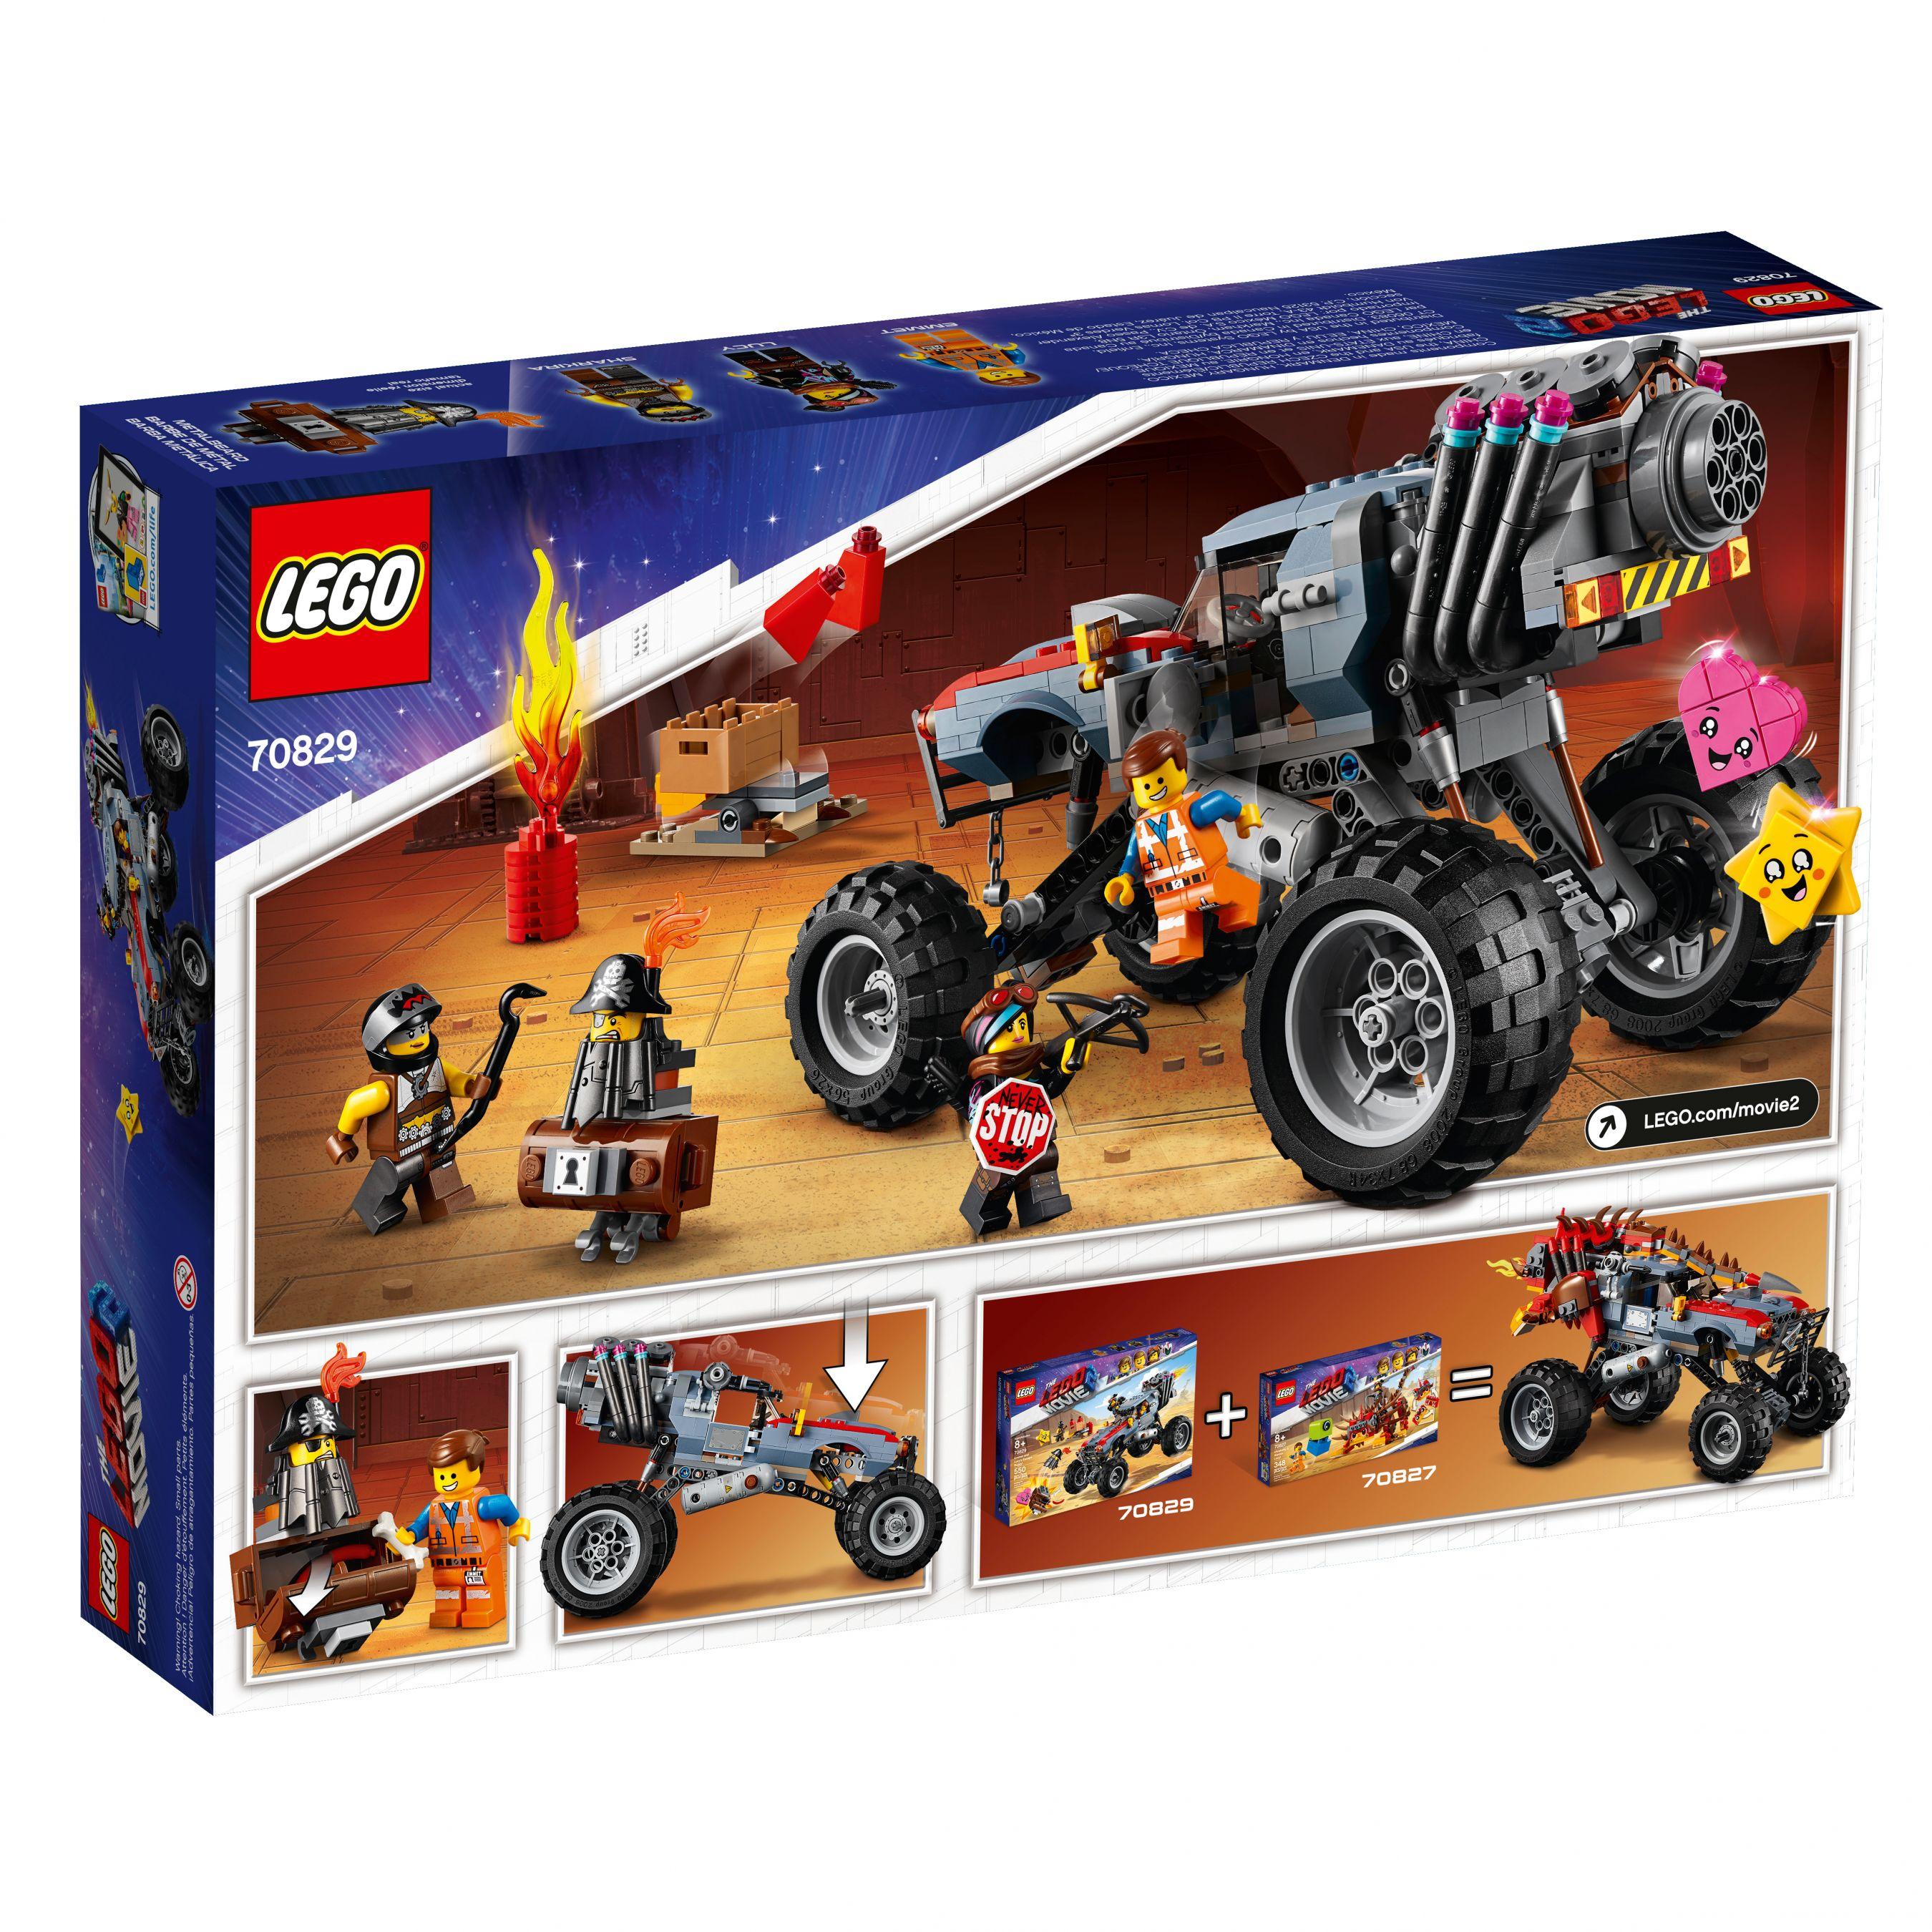 LEGO The LEGO Movie 2 70829 Emmets und Lucys Flucht-Buggy! LEGO_70829_alt2.jpg